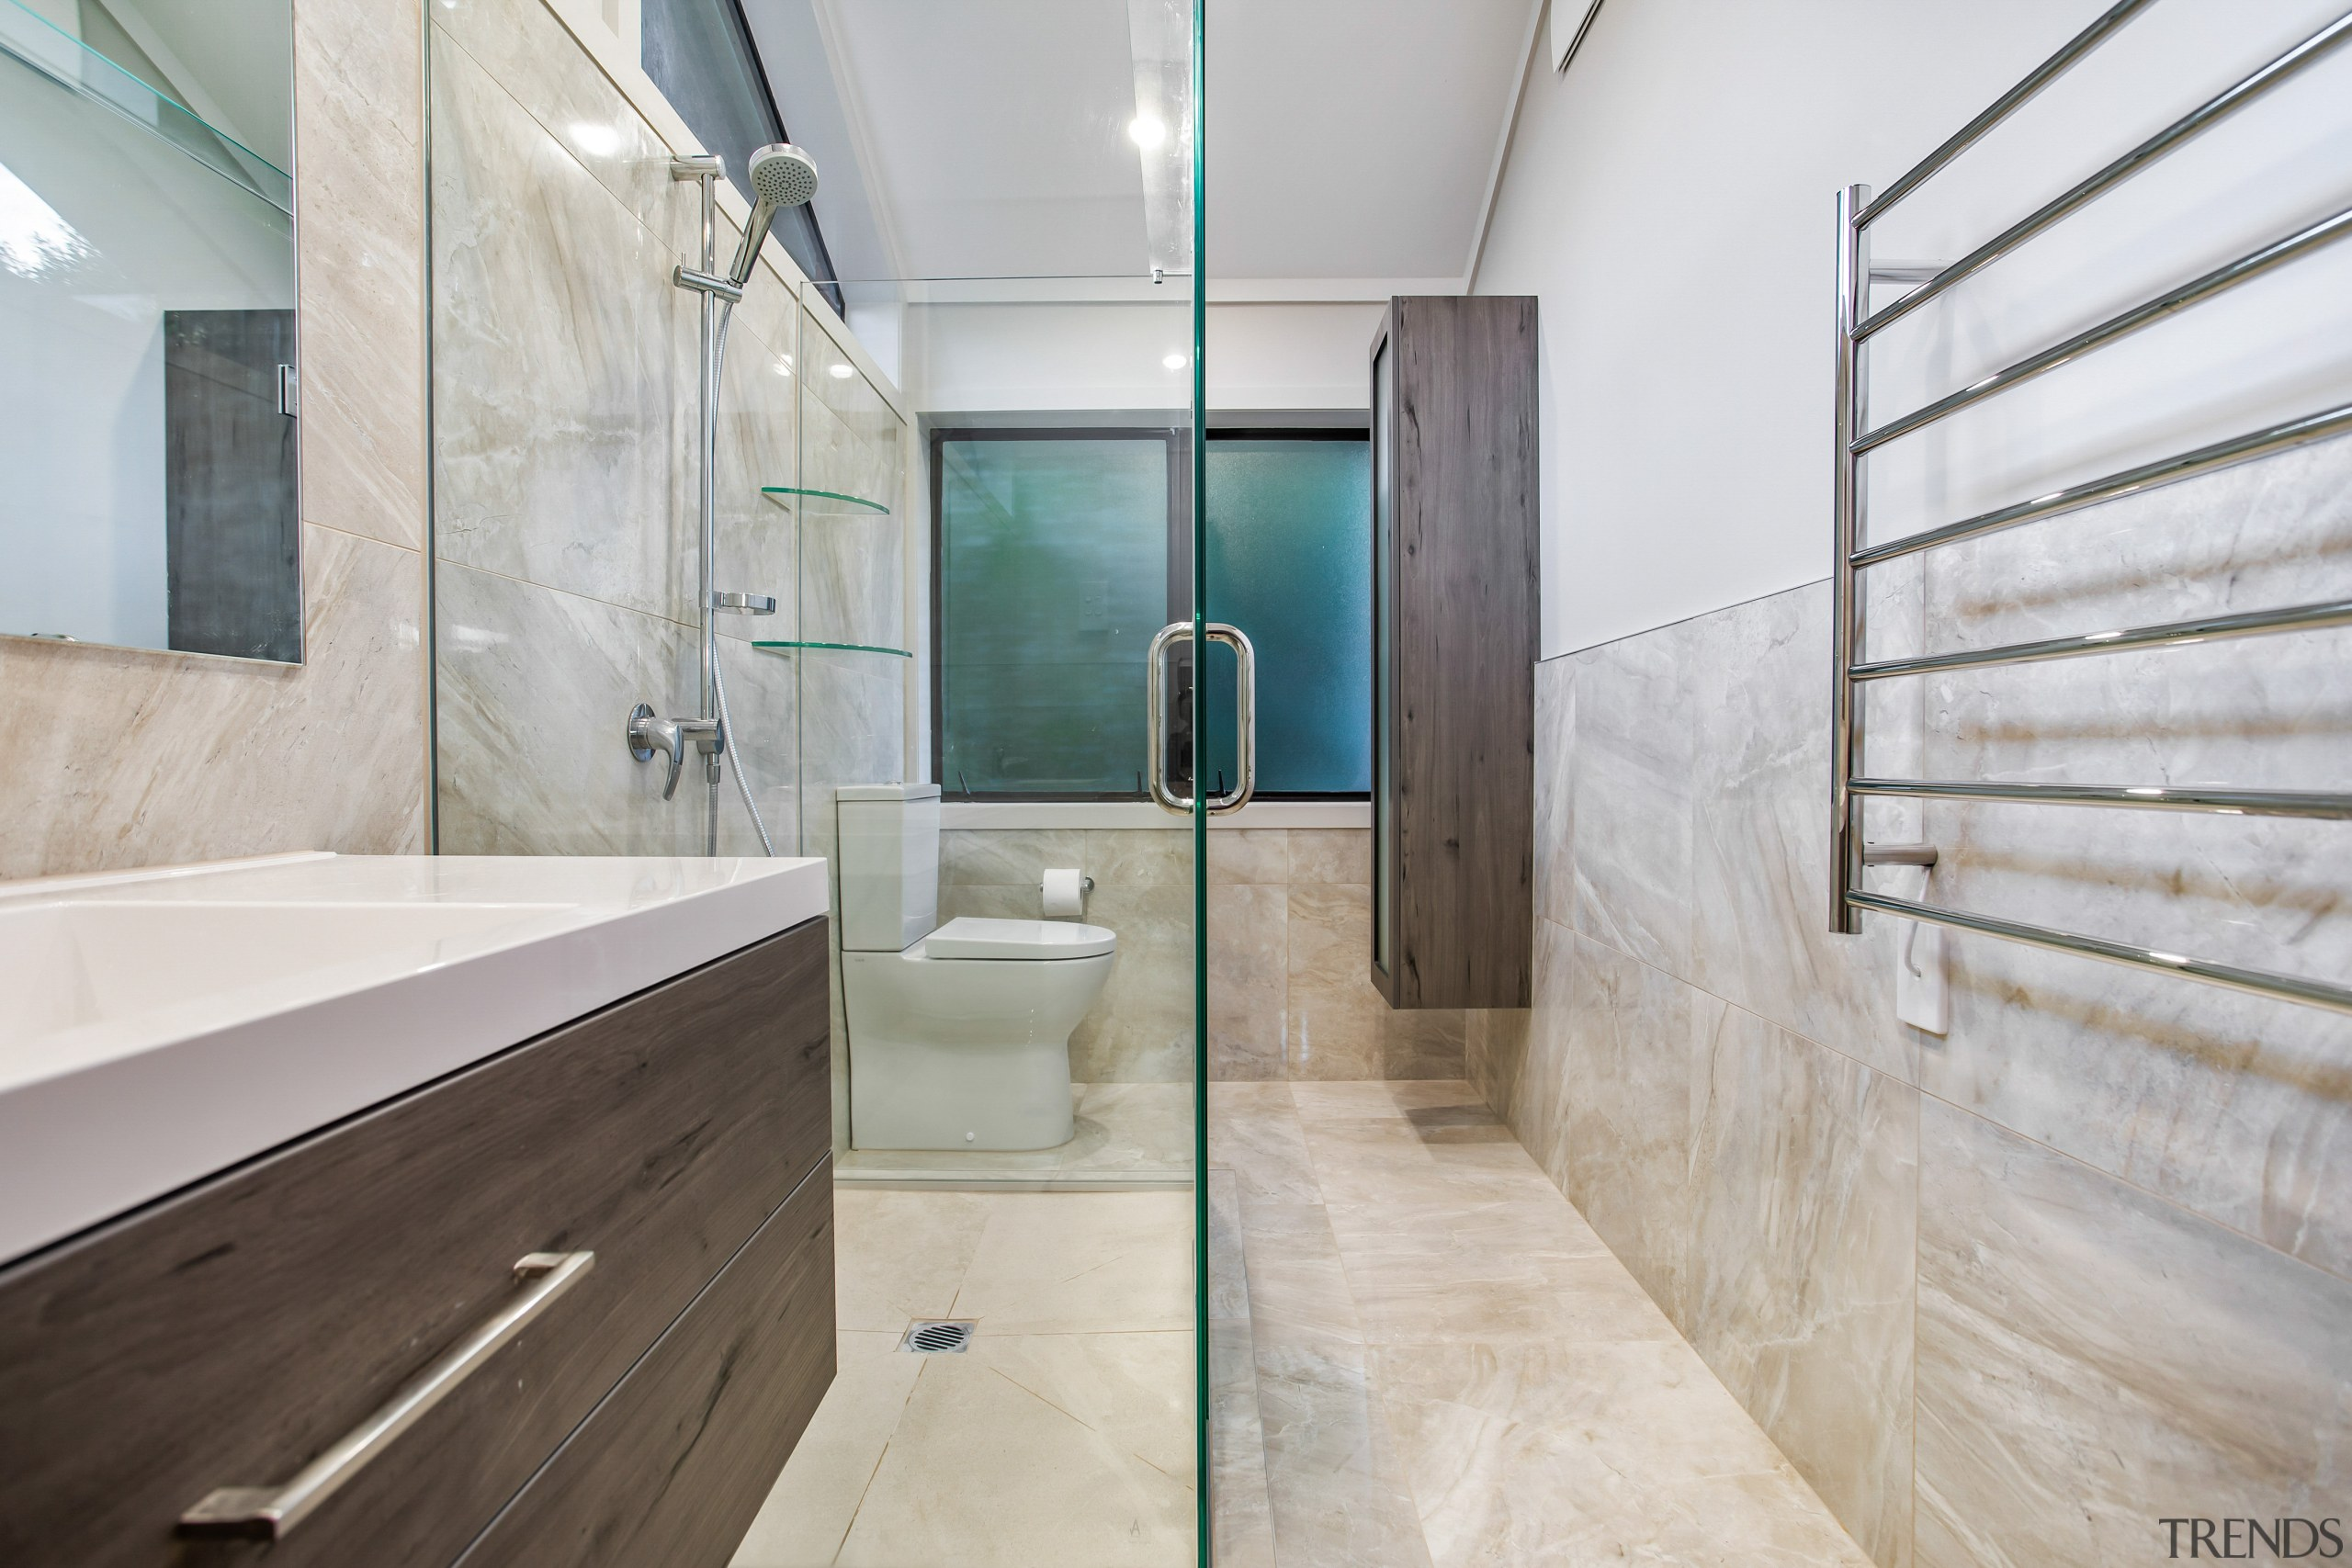 The tall frosted glass storage/display cabinet and vanity architecture, bathroom, building, ceiling, daylighting, estate, floor, flooring, glass, home, house, interior design, loft, property, real estate, room, tile, wall, gray